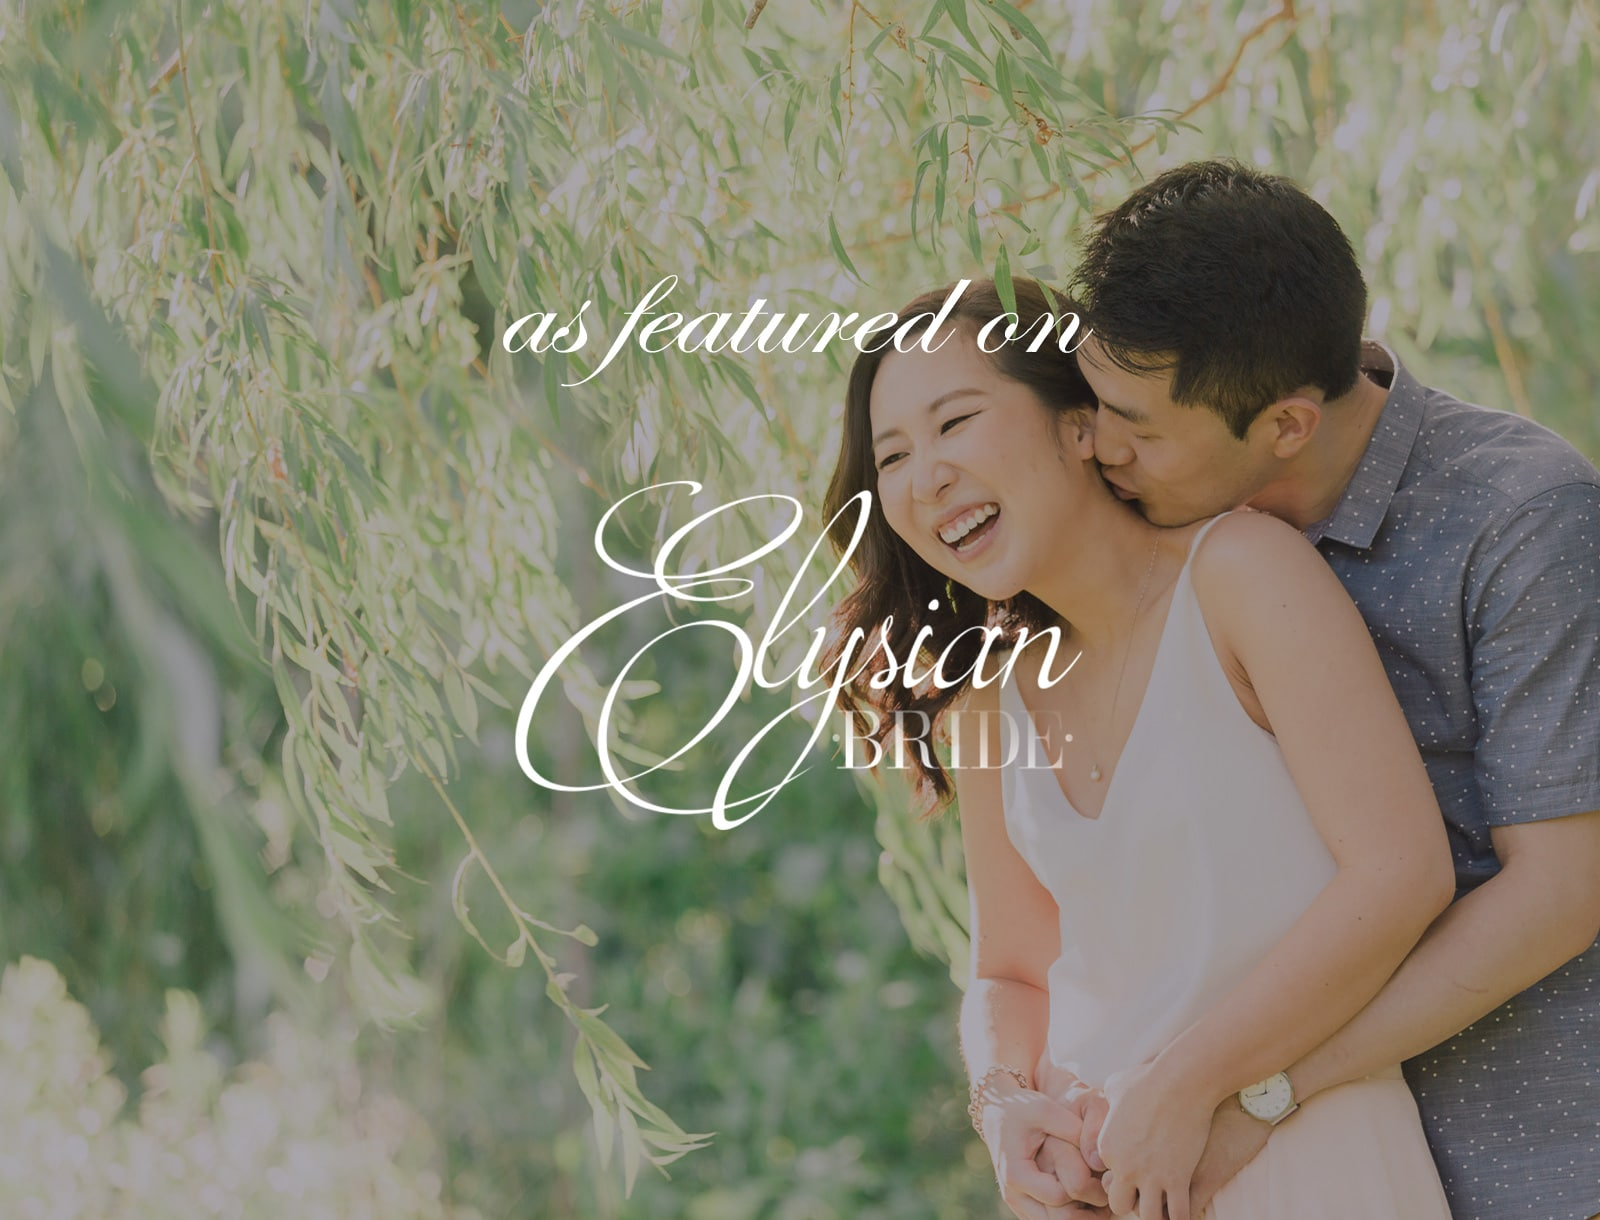 Featured on Elysian Bride: Whimsical Engagement Session in Toronto